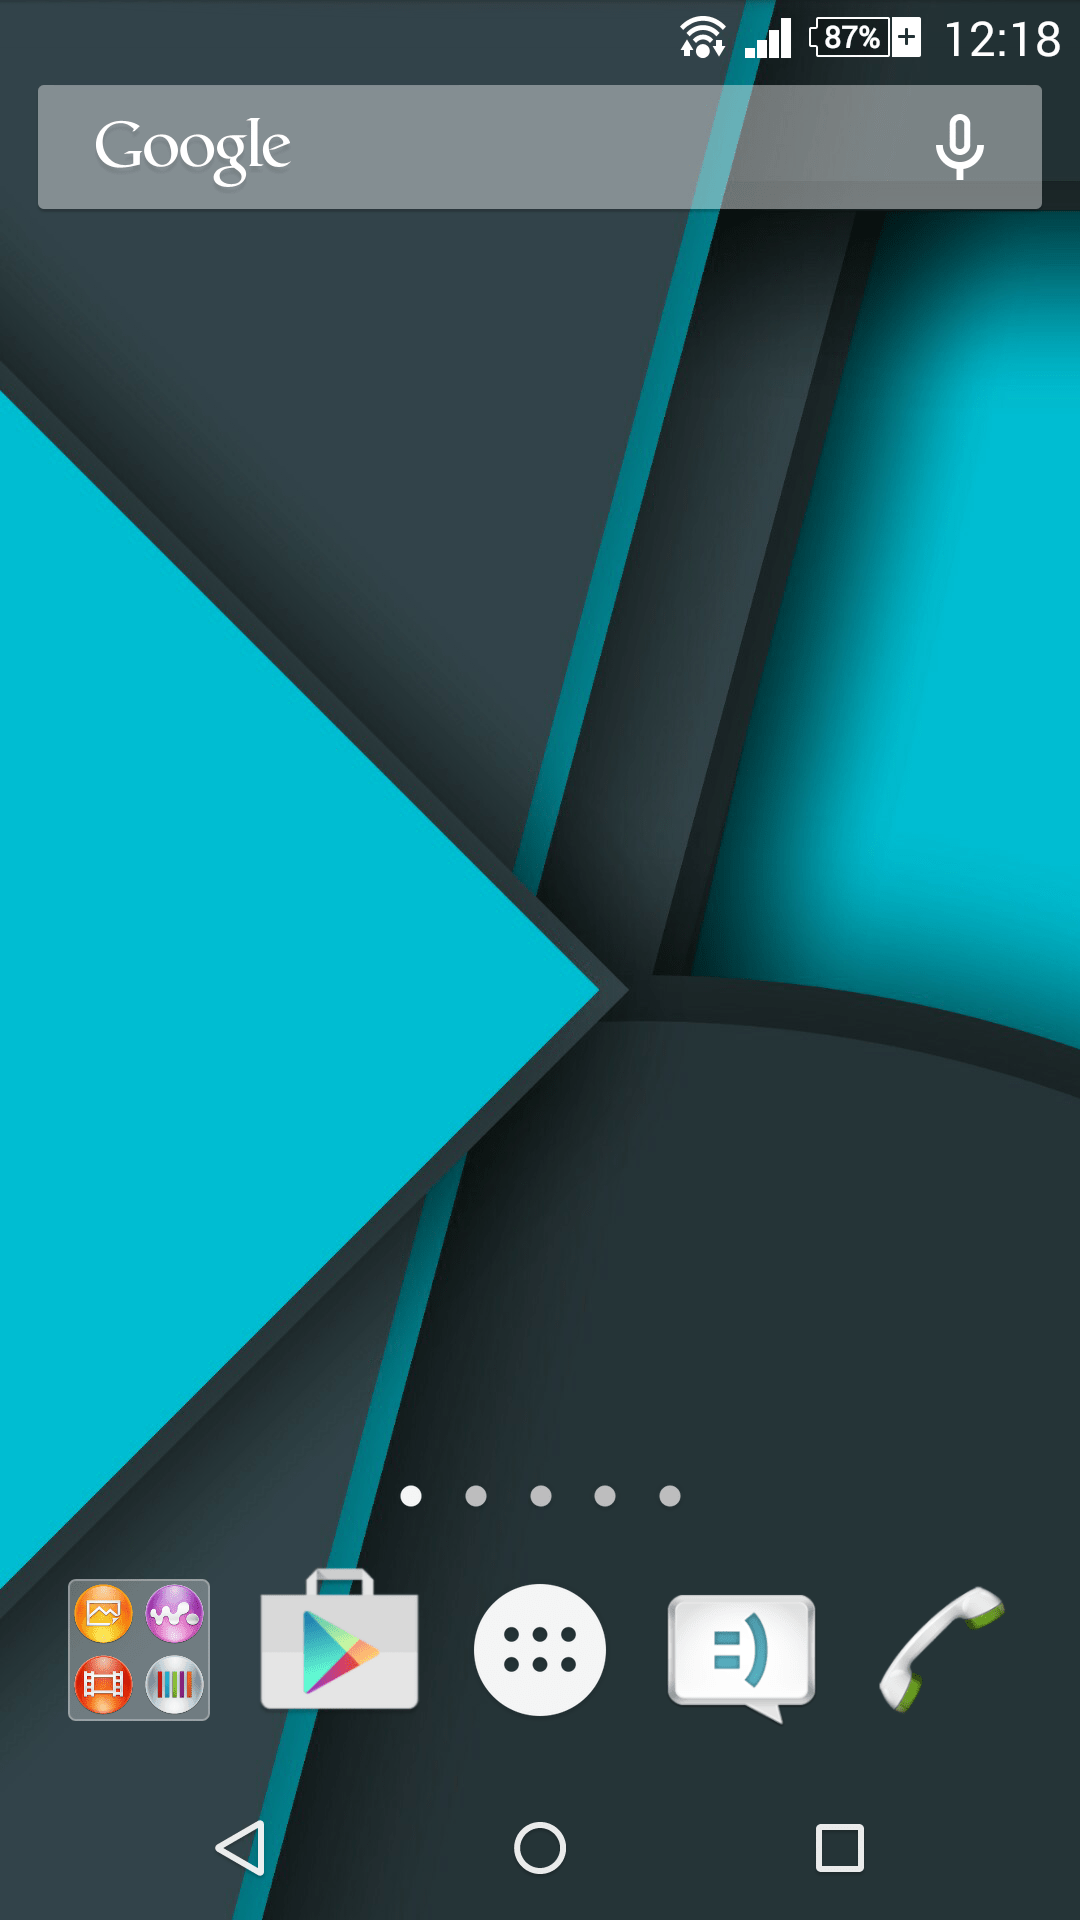 Android Lollipop Wallpaper Hd 1080p Download 141 Wallpapers Inspired From Material Design For